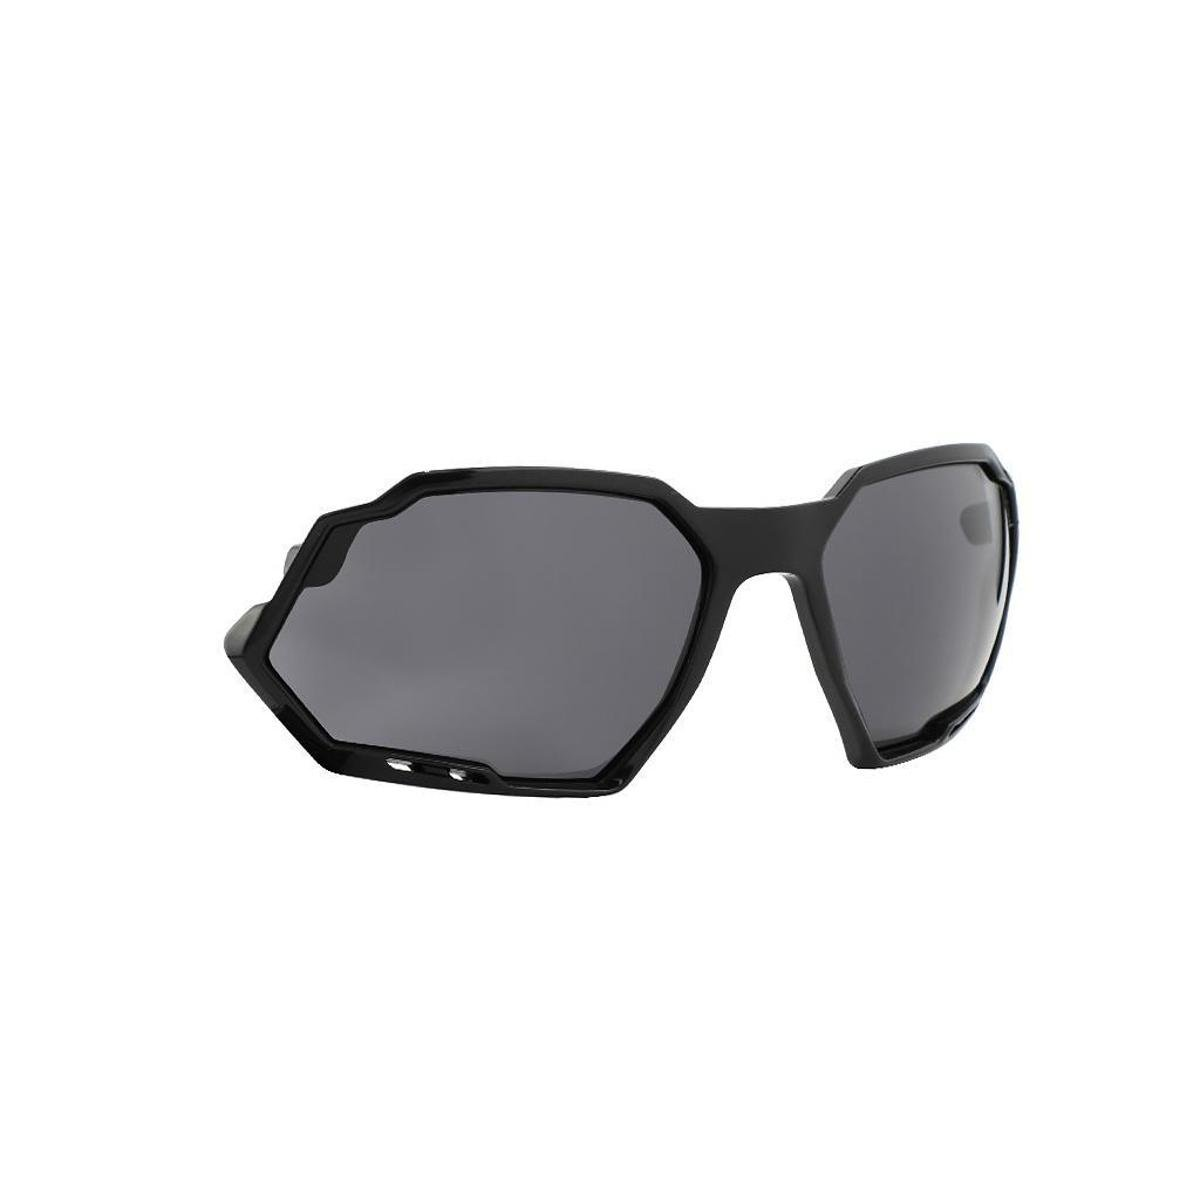 OCULOS HB RUSH MATTE BLACK GRAY